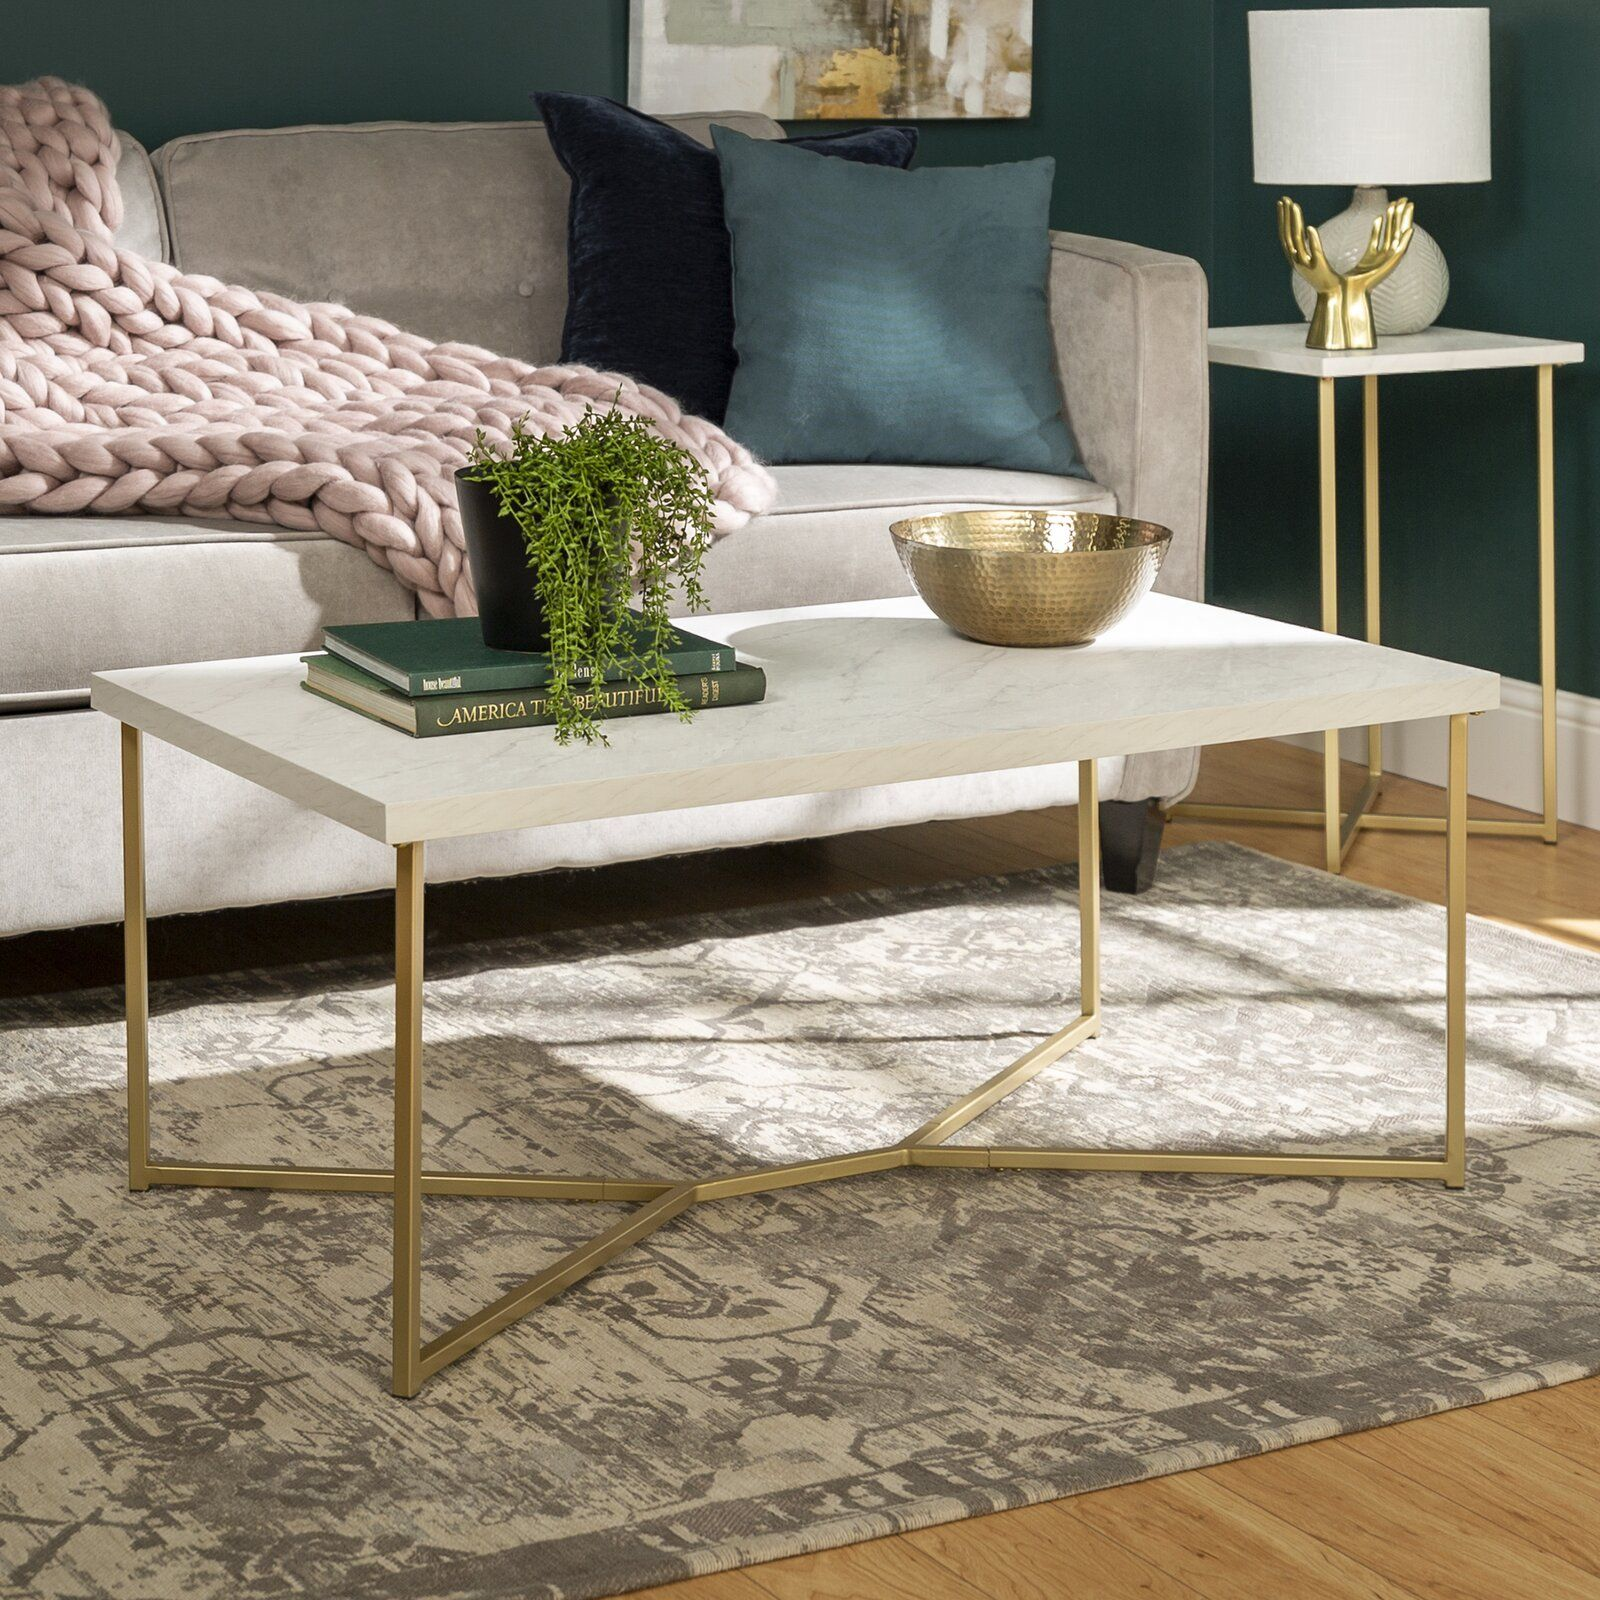 Modern Rustic Interiors Devito Coffee Table With Tray Top Reviews Wayfair Coffee Table Coffee Table Rectangle Coffee Table With Storage [ 1600 x 1600 Pixel ]